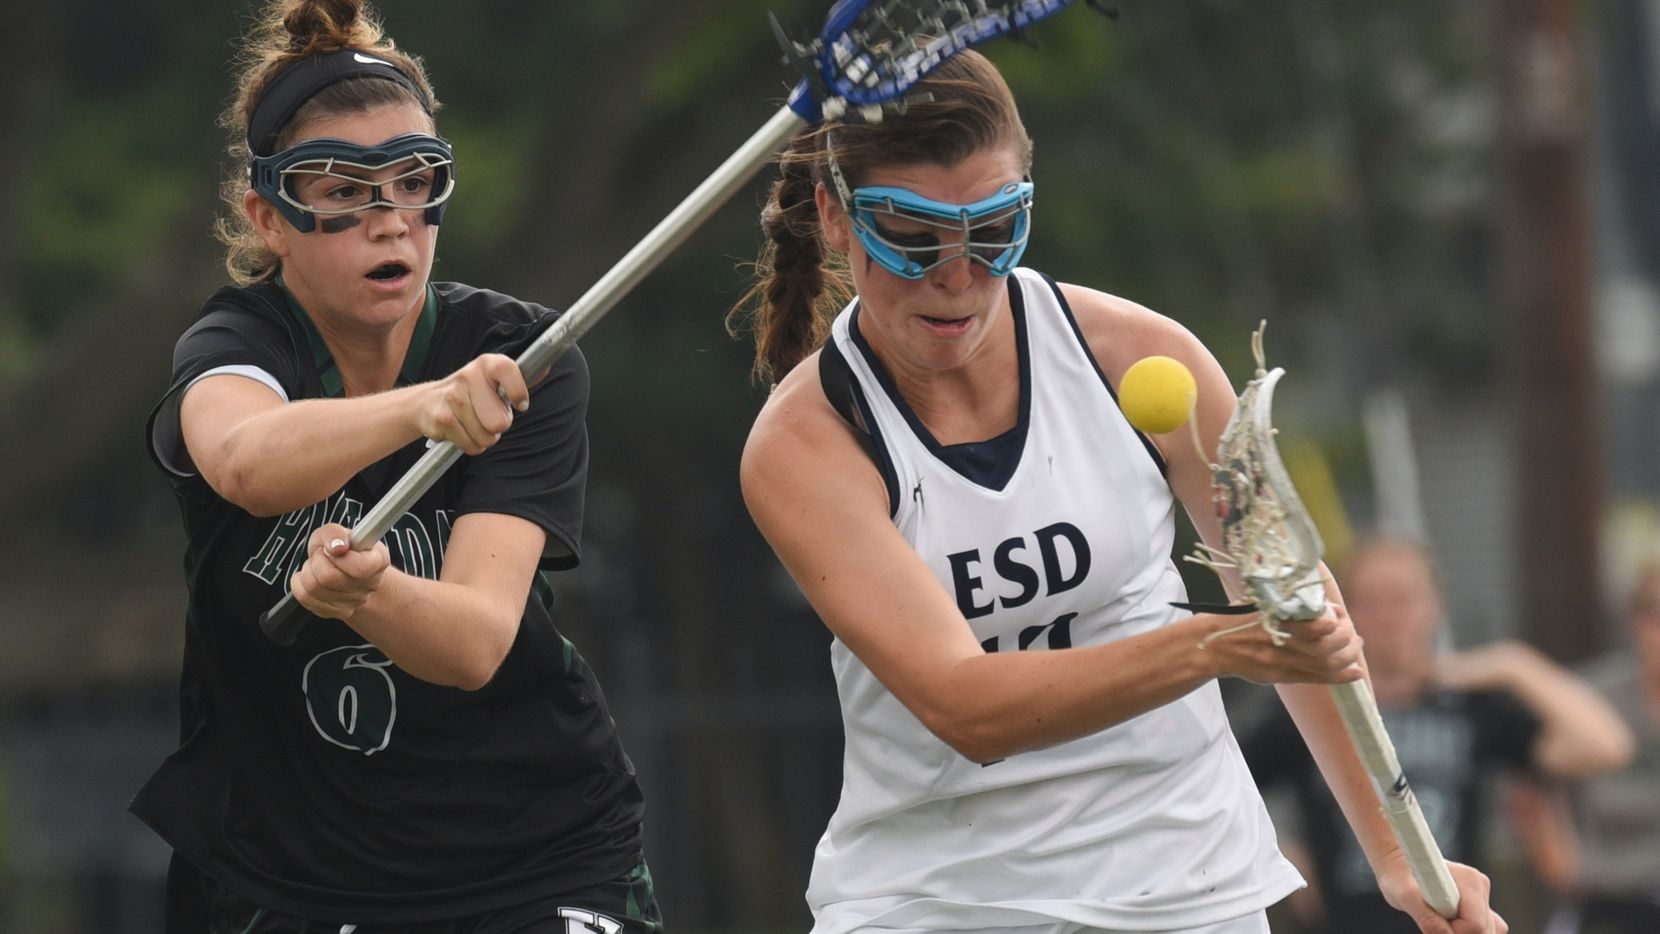 Hockaday's Kate Love (6), left, and ESD's Charlotte North (10) fight for the ball during their championship lacrosse game at Jones Stadium on Saturday, April 29, 2017.